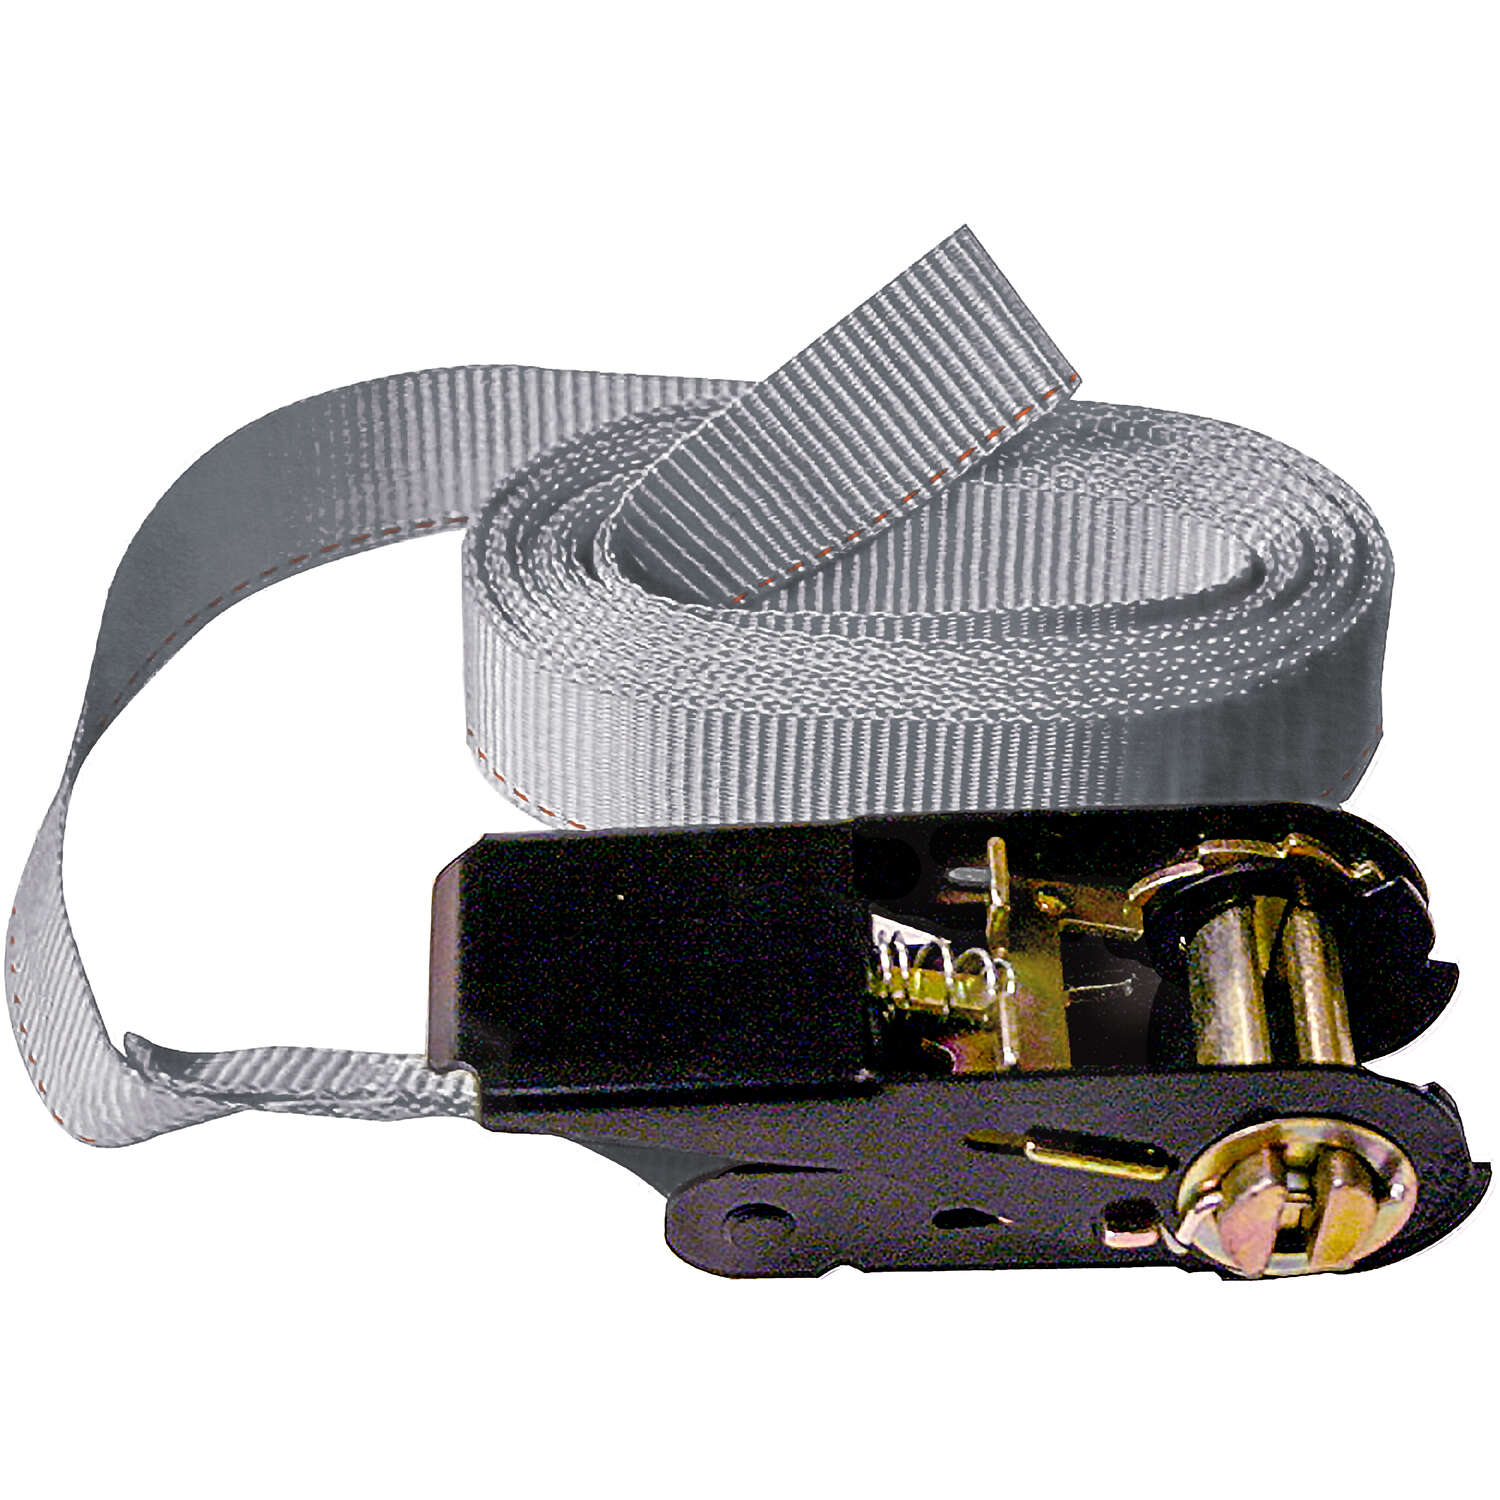 Keeper  1 in. W x 13 ft. L Gray  Tie Down w/Ratchet  400 lb. 1 pk